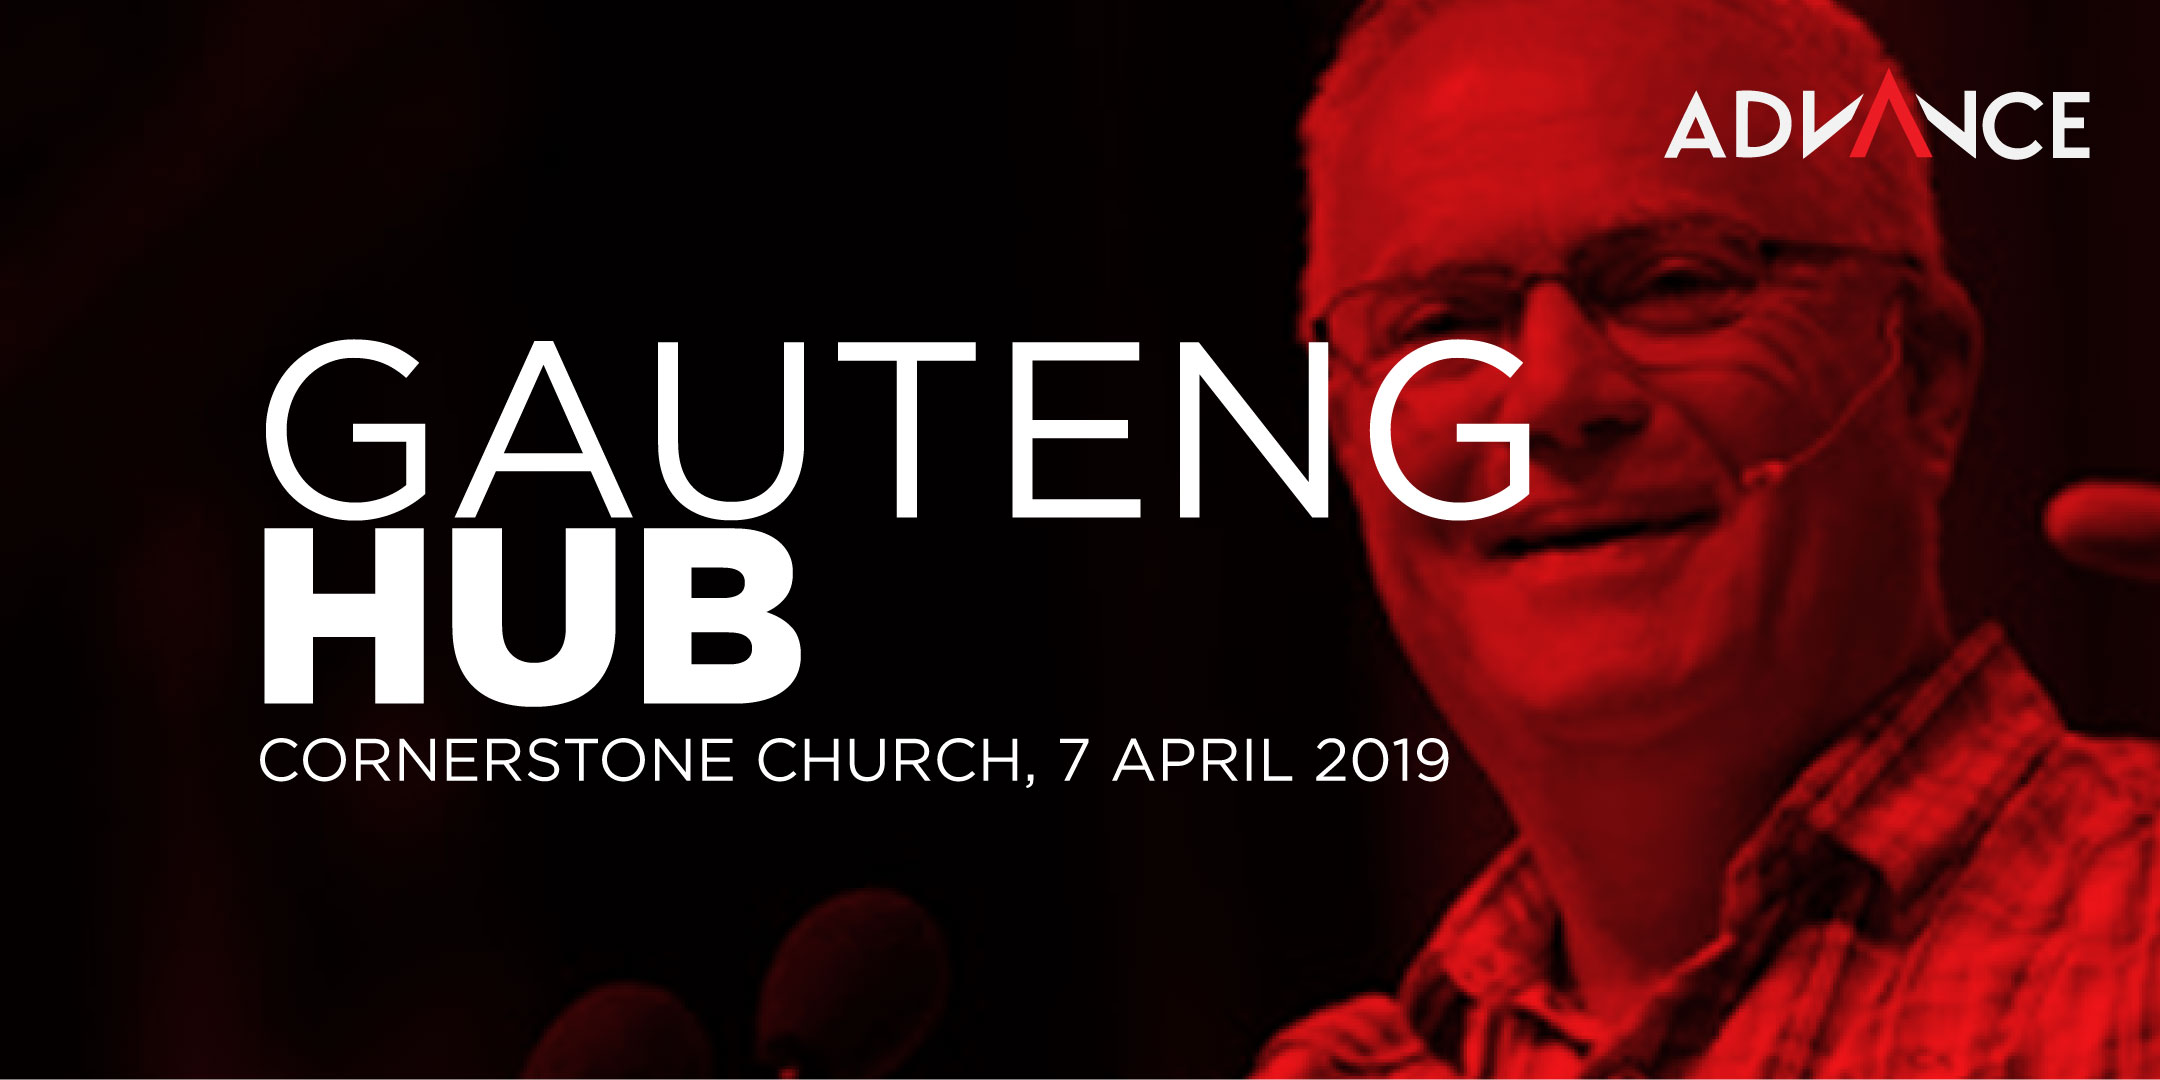 Africa | Gauteng Hub with David Holden